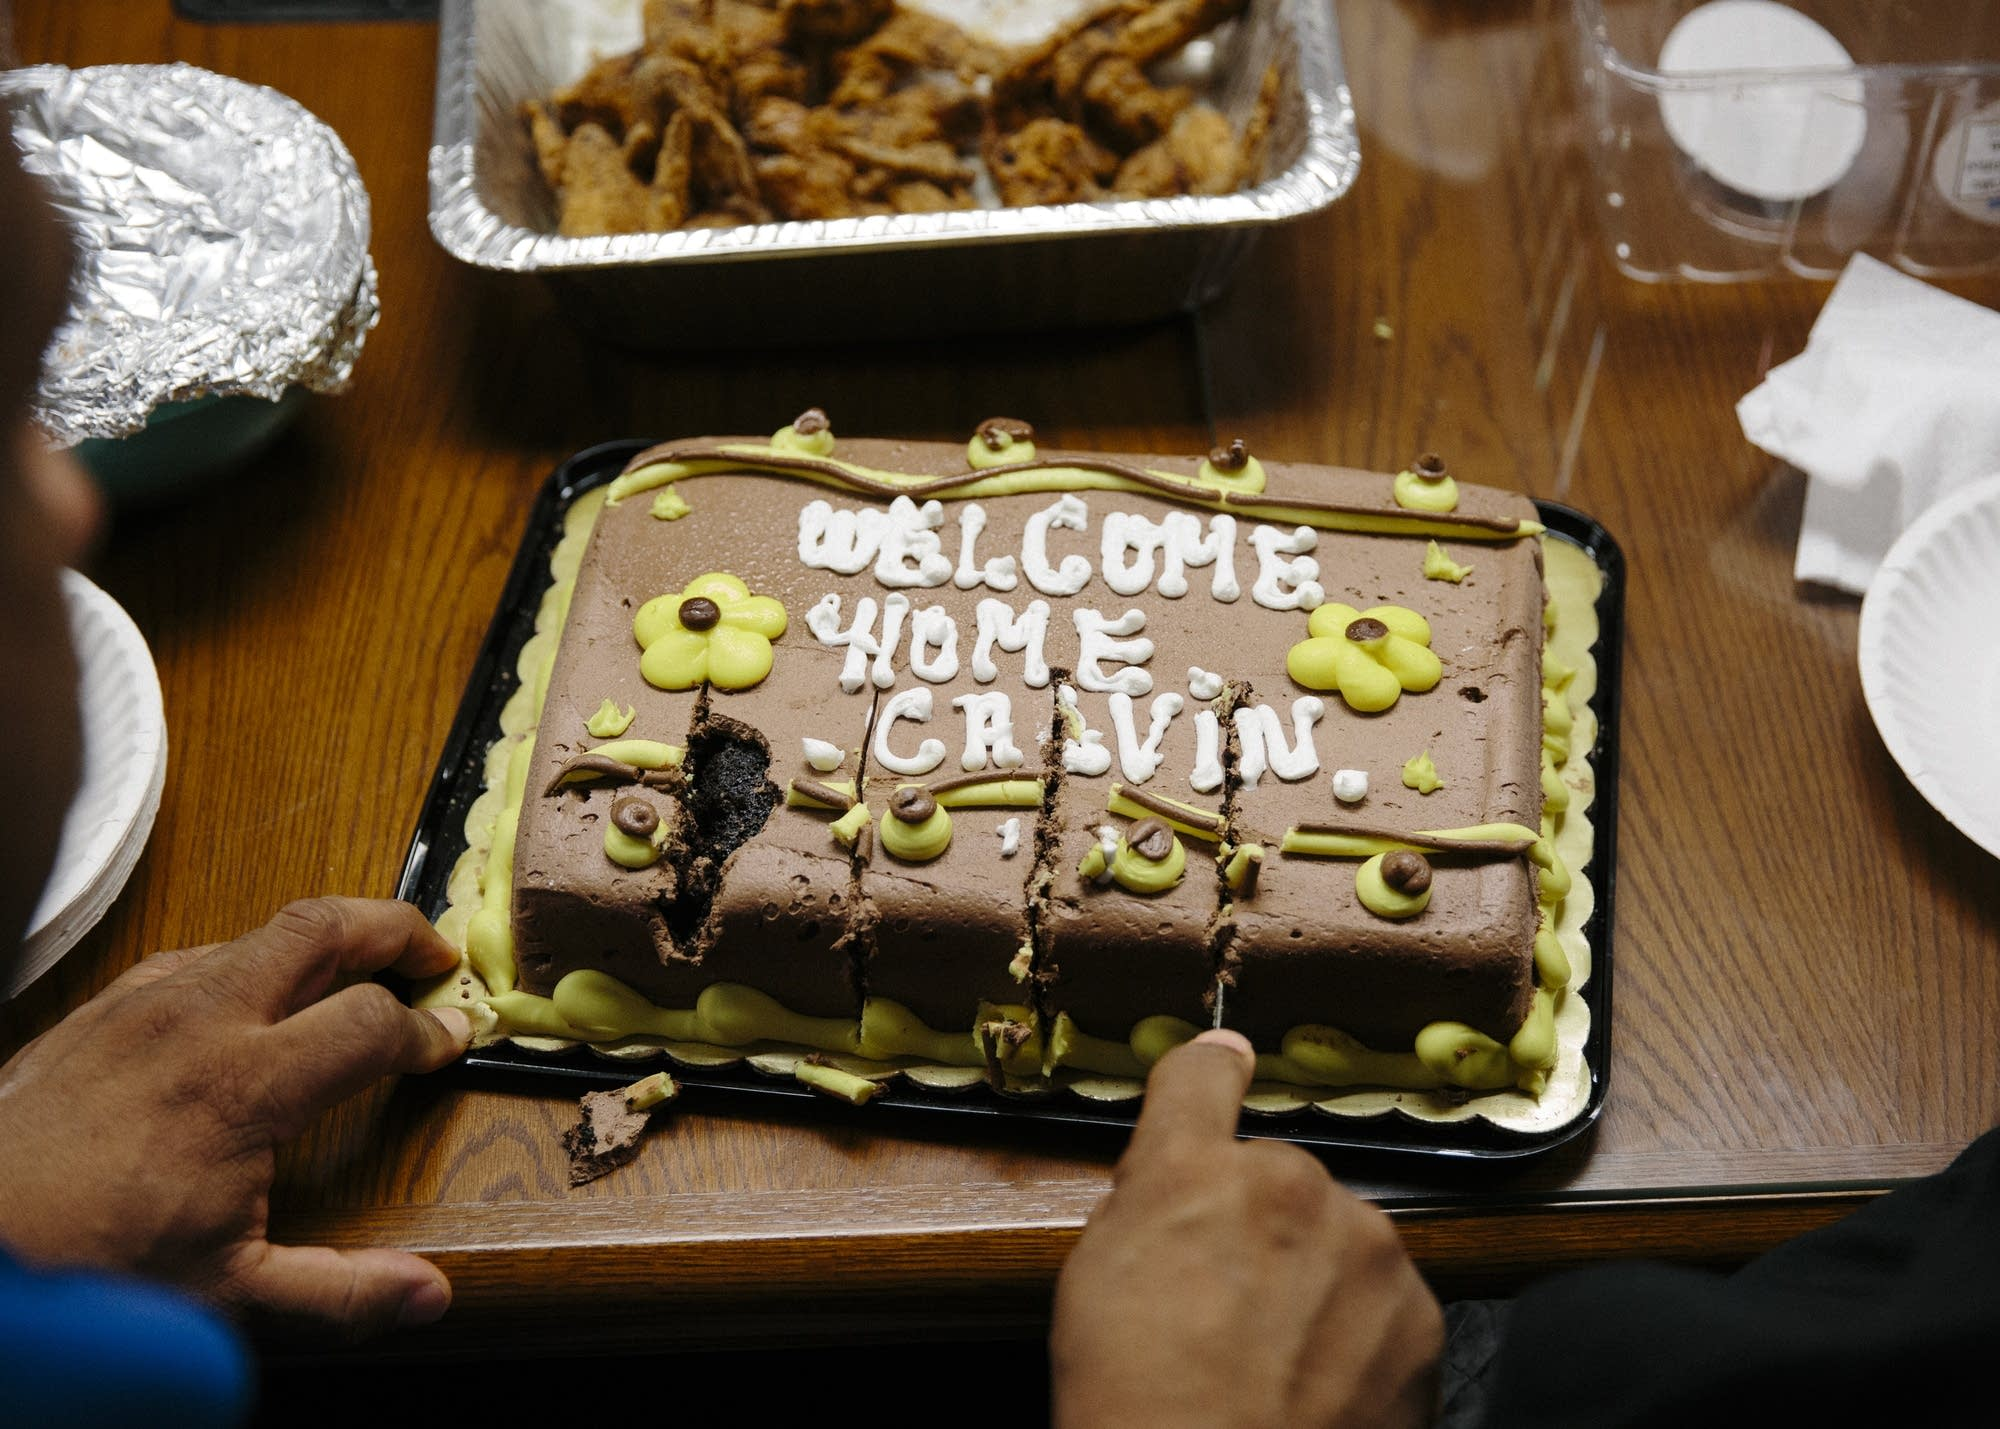 A cake is cut for a new group member.